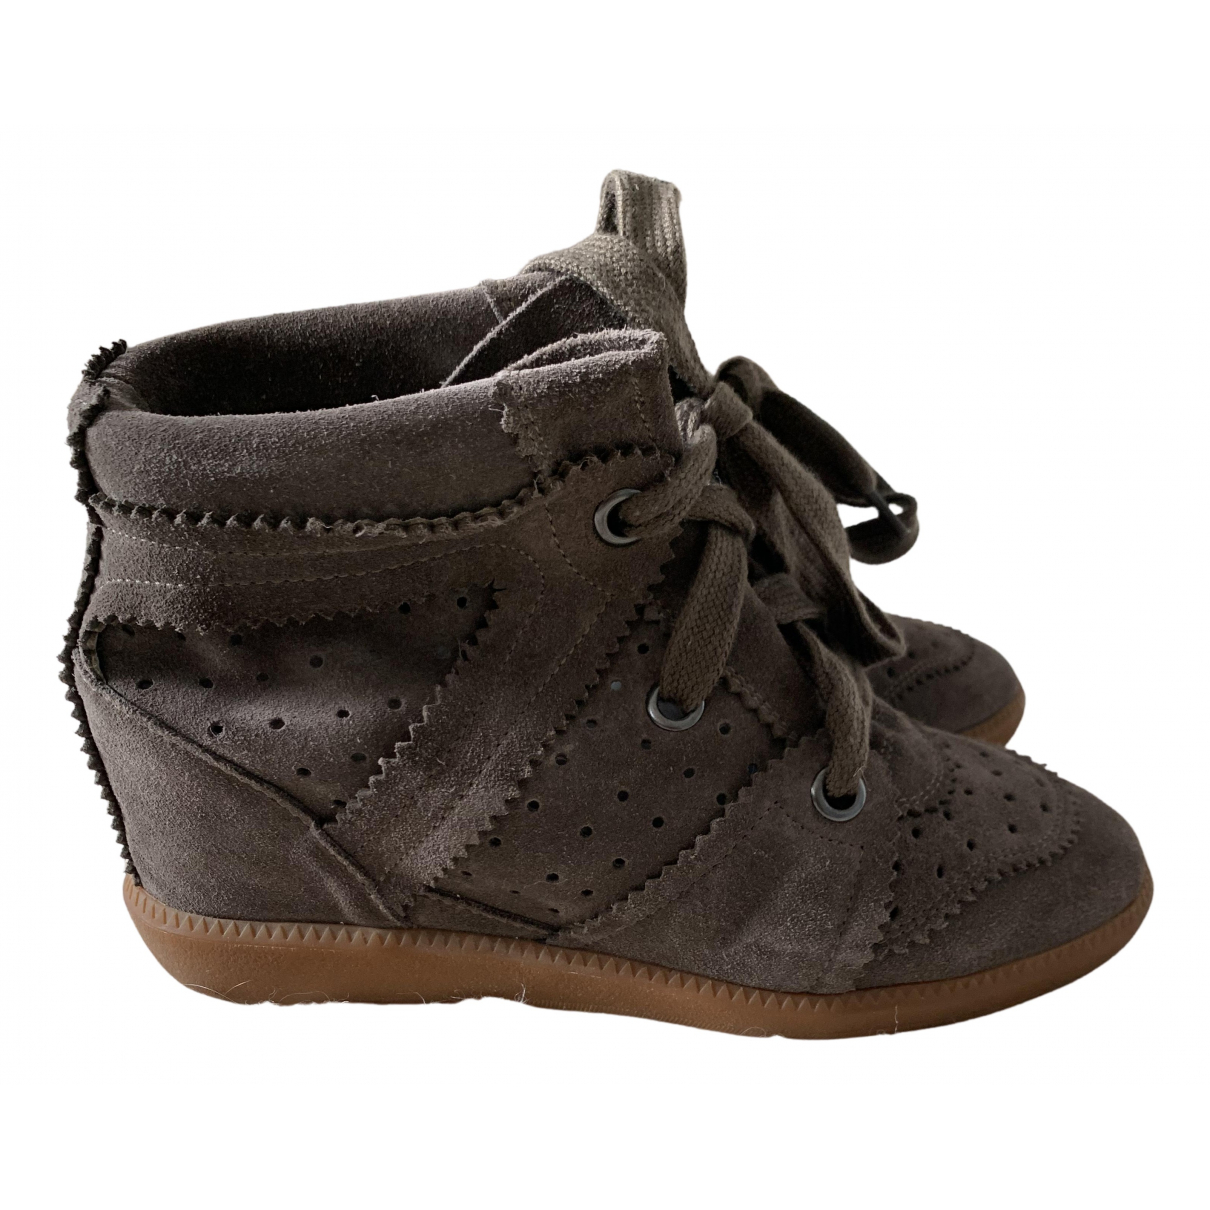 Isabel Marant Betty Khaki Leather Trainers for Women 37 EU